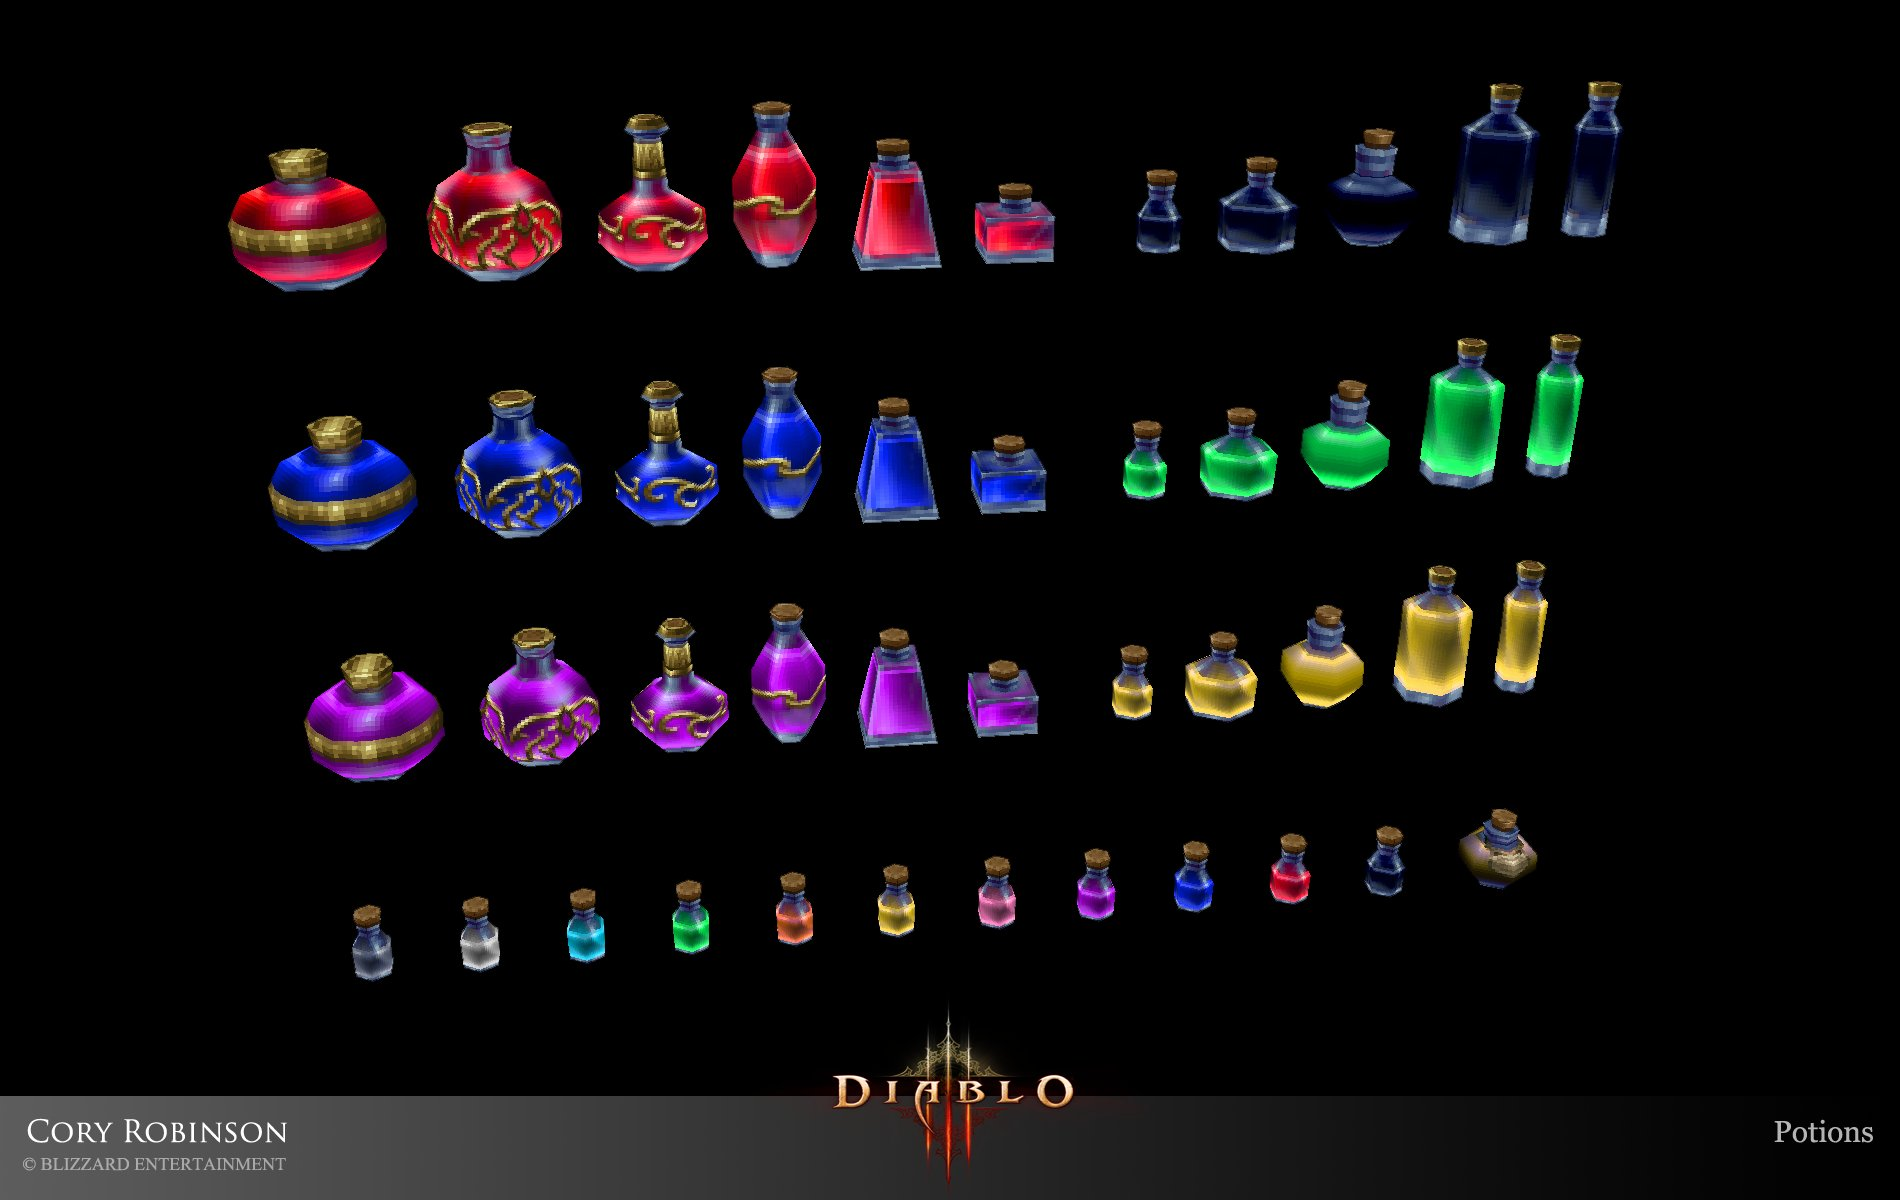 Potions Diablo Wiki Fandom Powered By Wikia